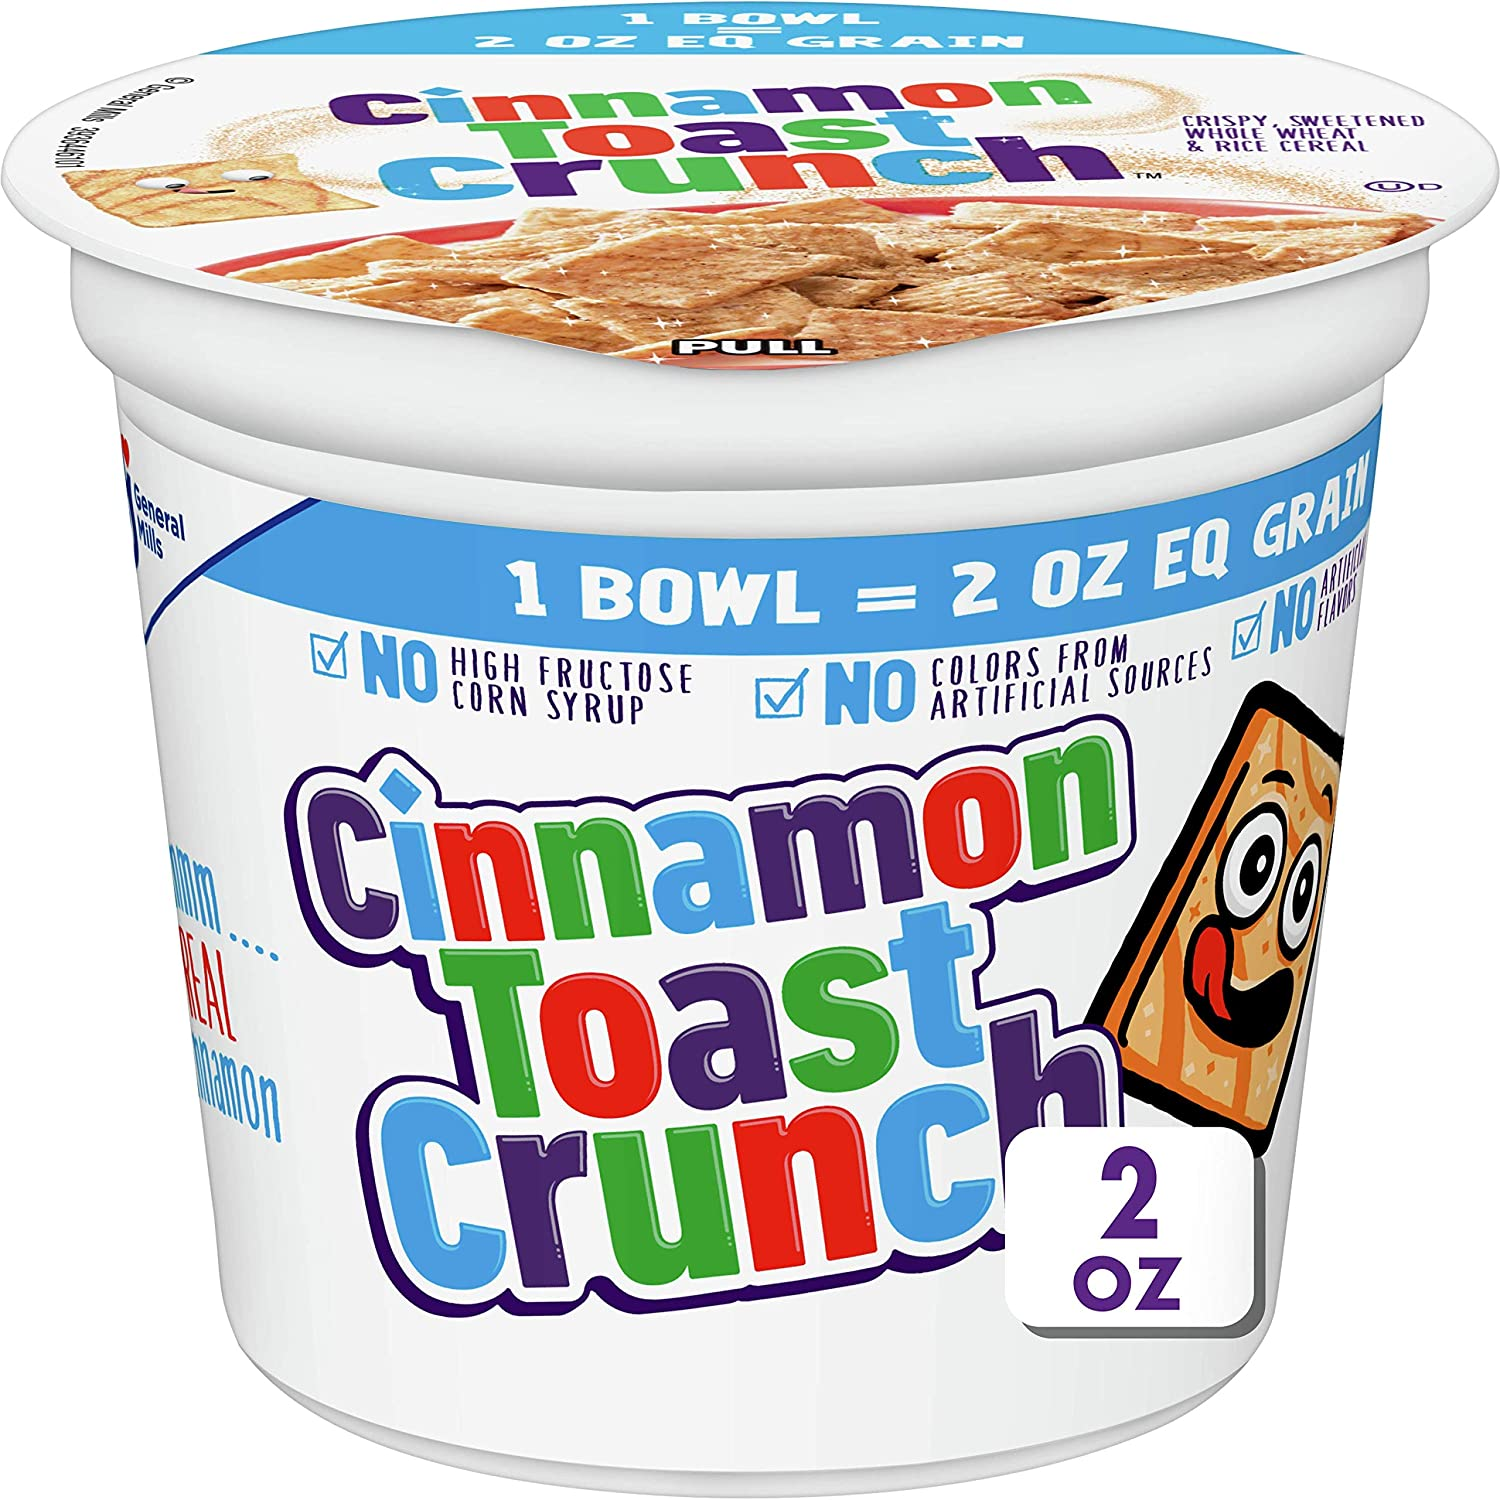 Cinnamon Toast Crunch Breakfast Cereal Cups, 2 oz (Pack of 12)